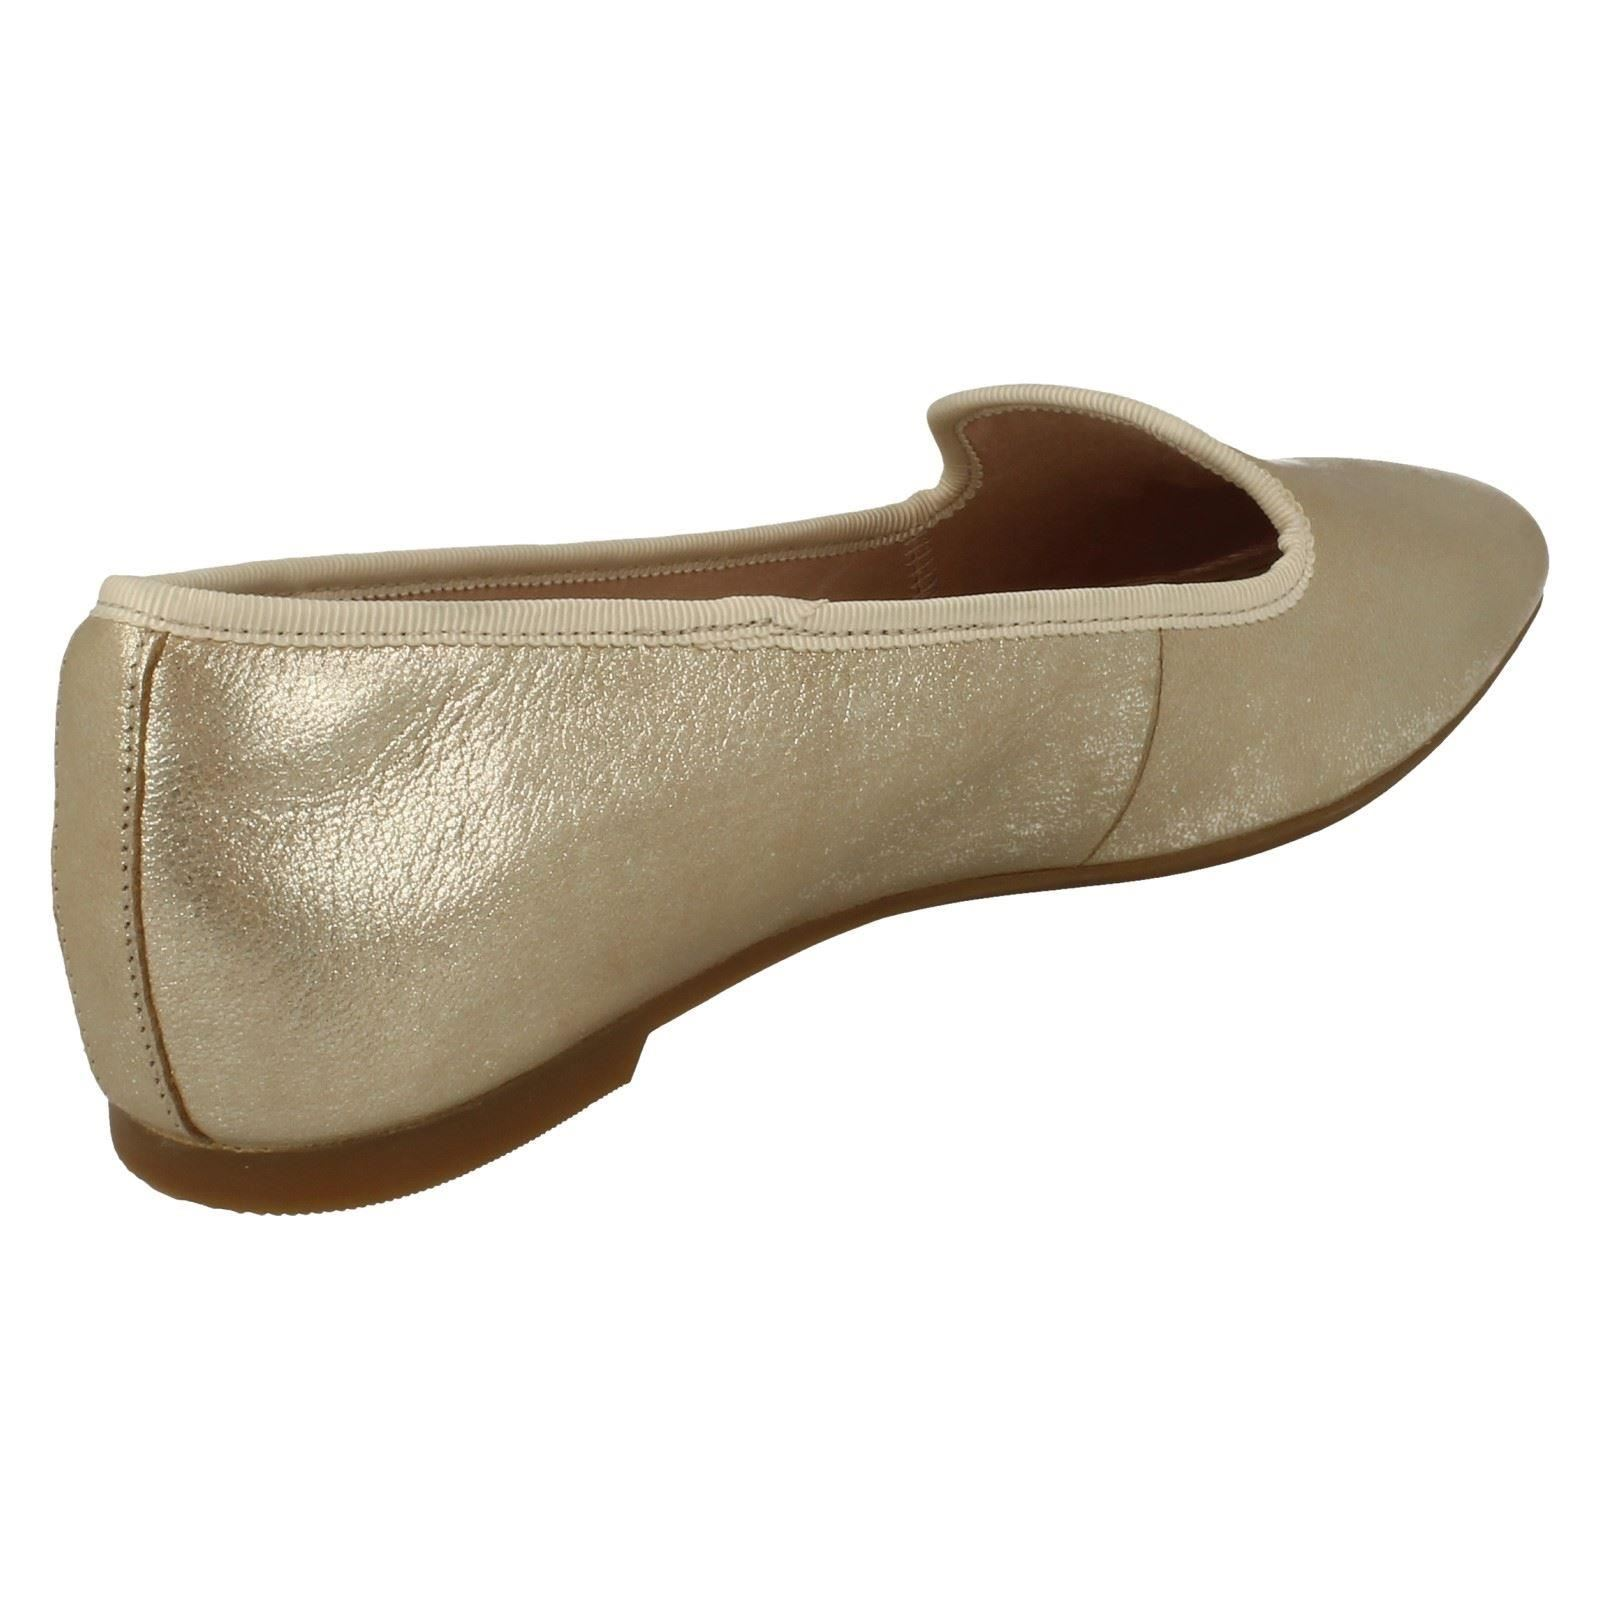 Clarks Damas antideslizante en mocasines Chia Milly